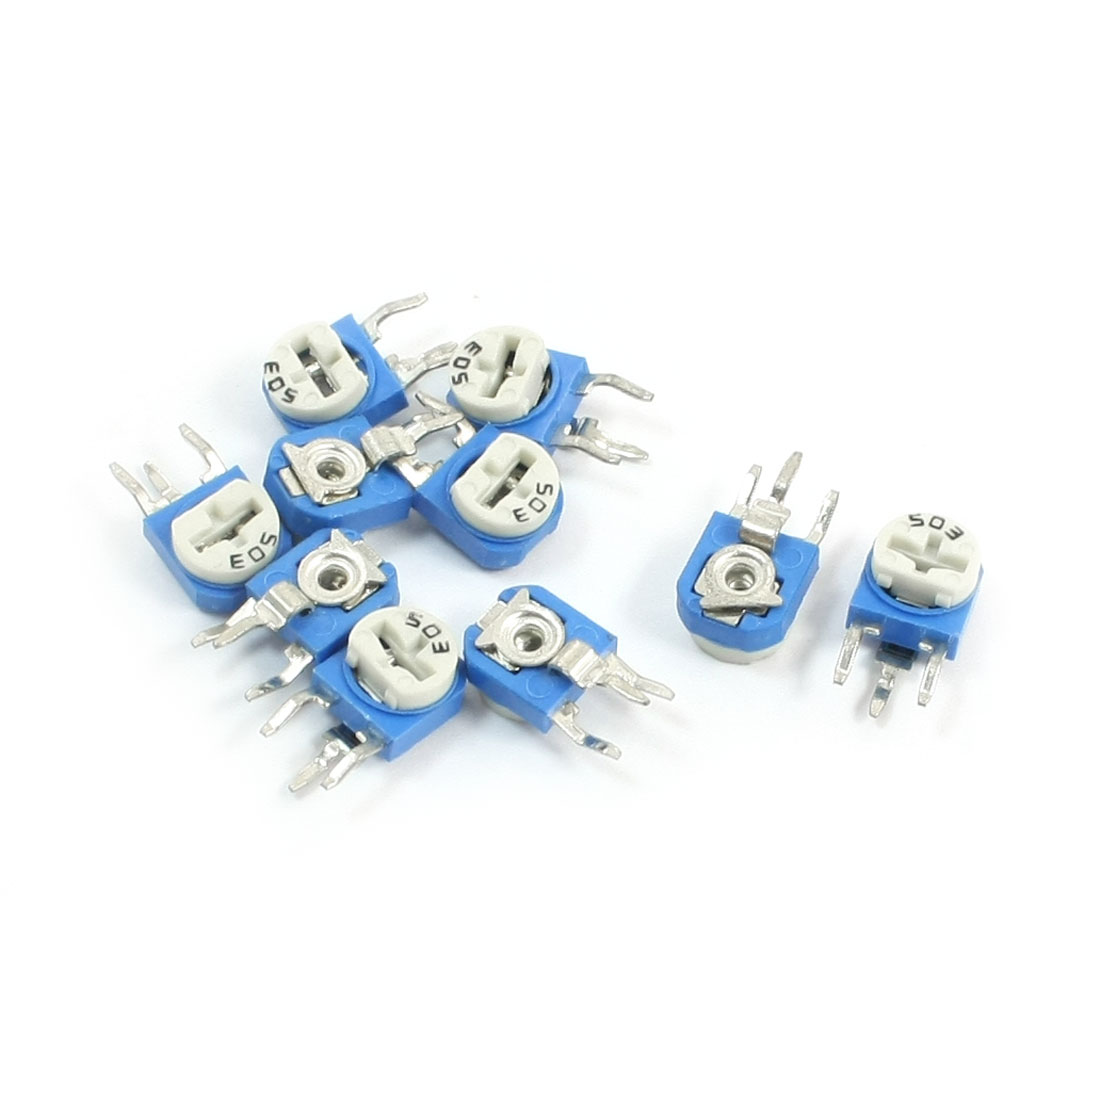 10pcs 50K Ohm Vertical Variable Resistor Trimmer Potentiometers Blue